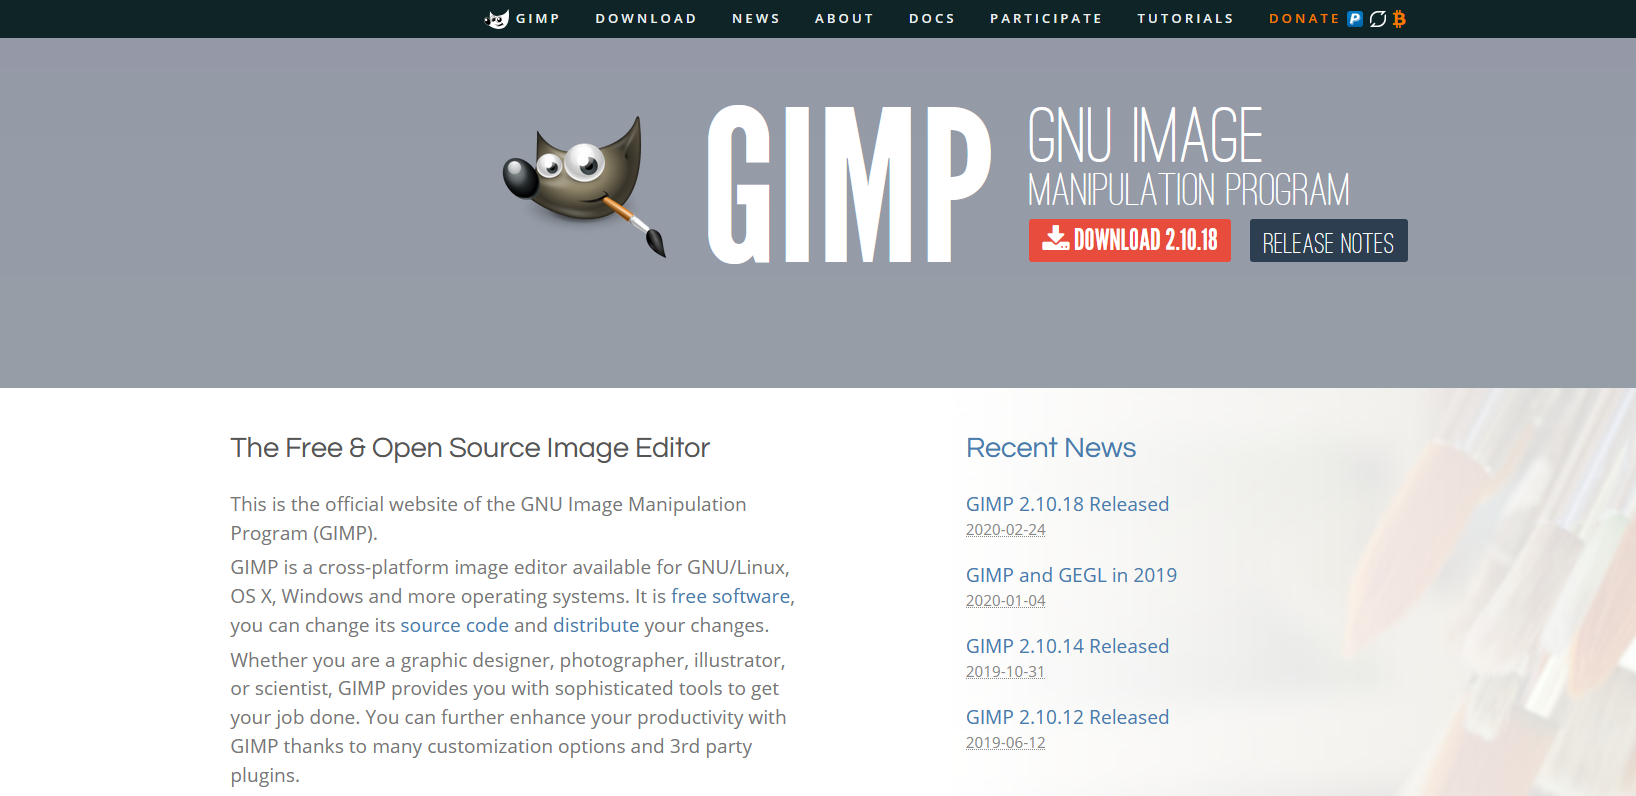 The Gimp website.